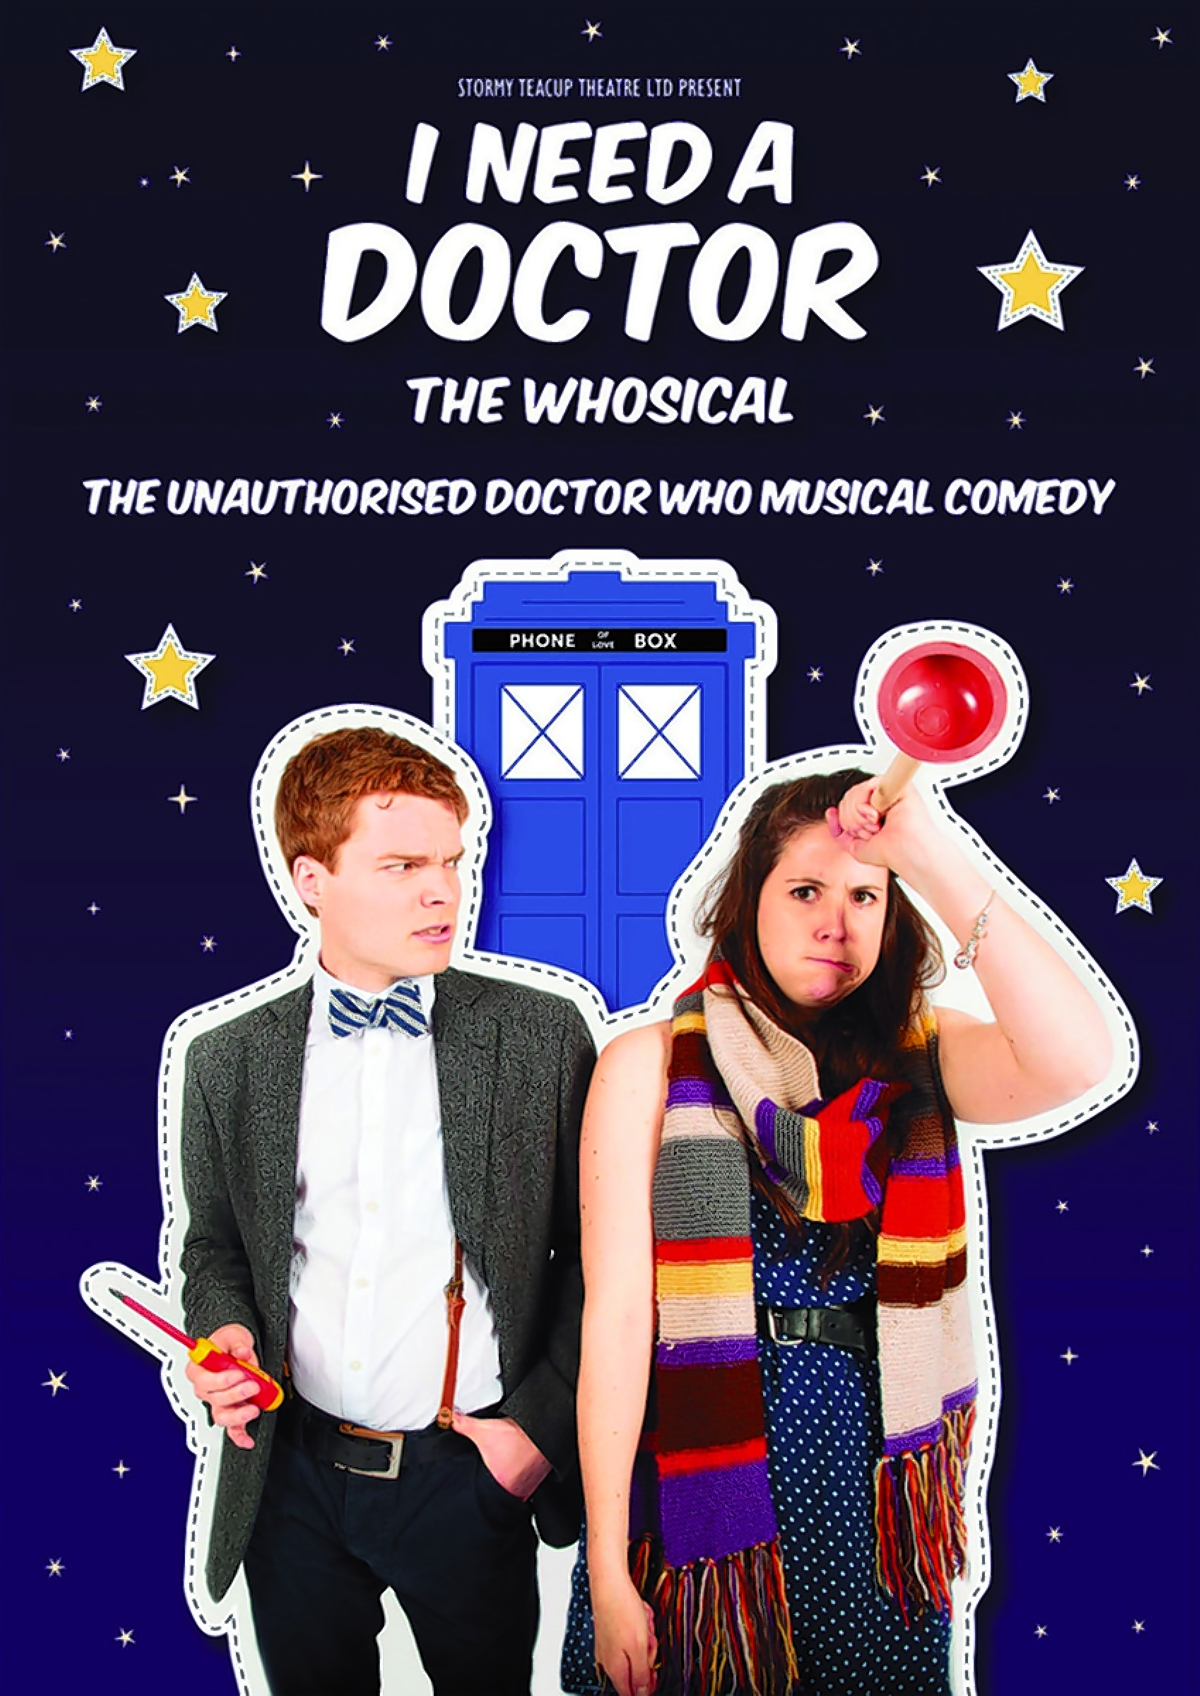 Catch Doctor Who musical I Need A Doctor before it regenerates